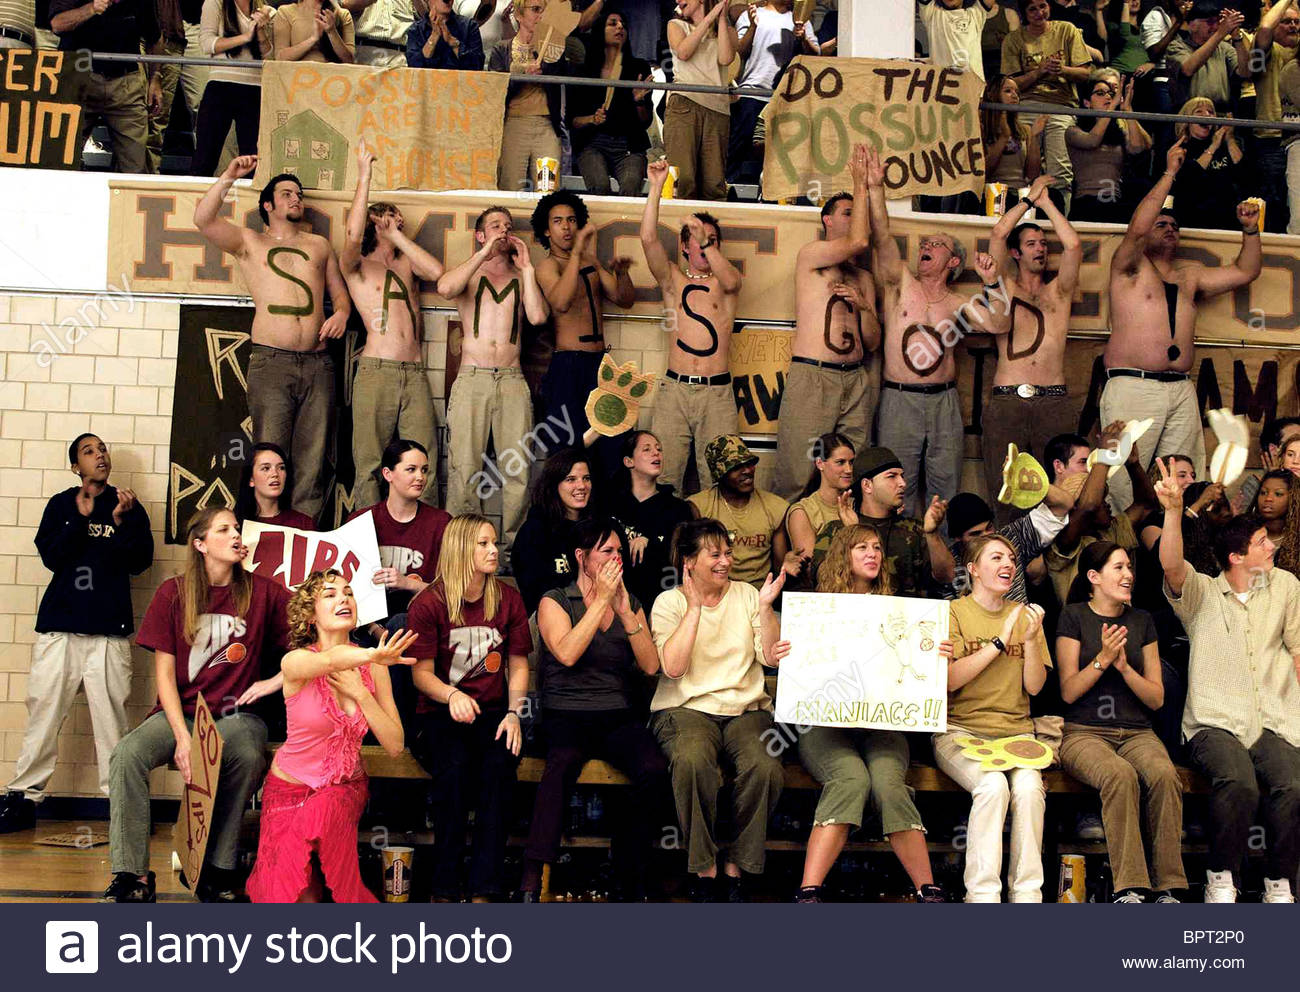 BASKETBALL FANS FULL OF IT (2007) - Stock Image